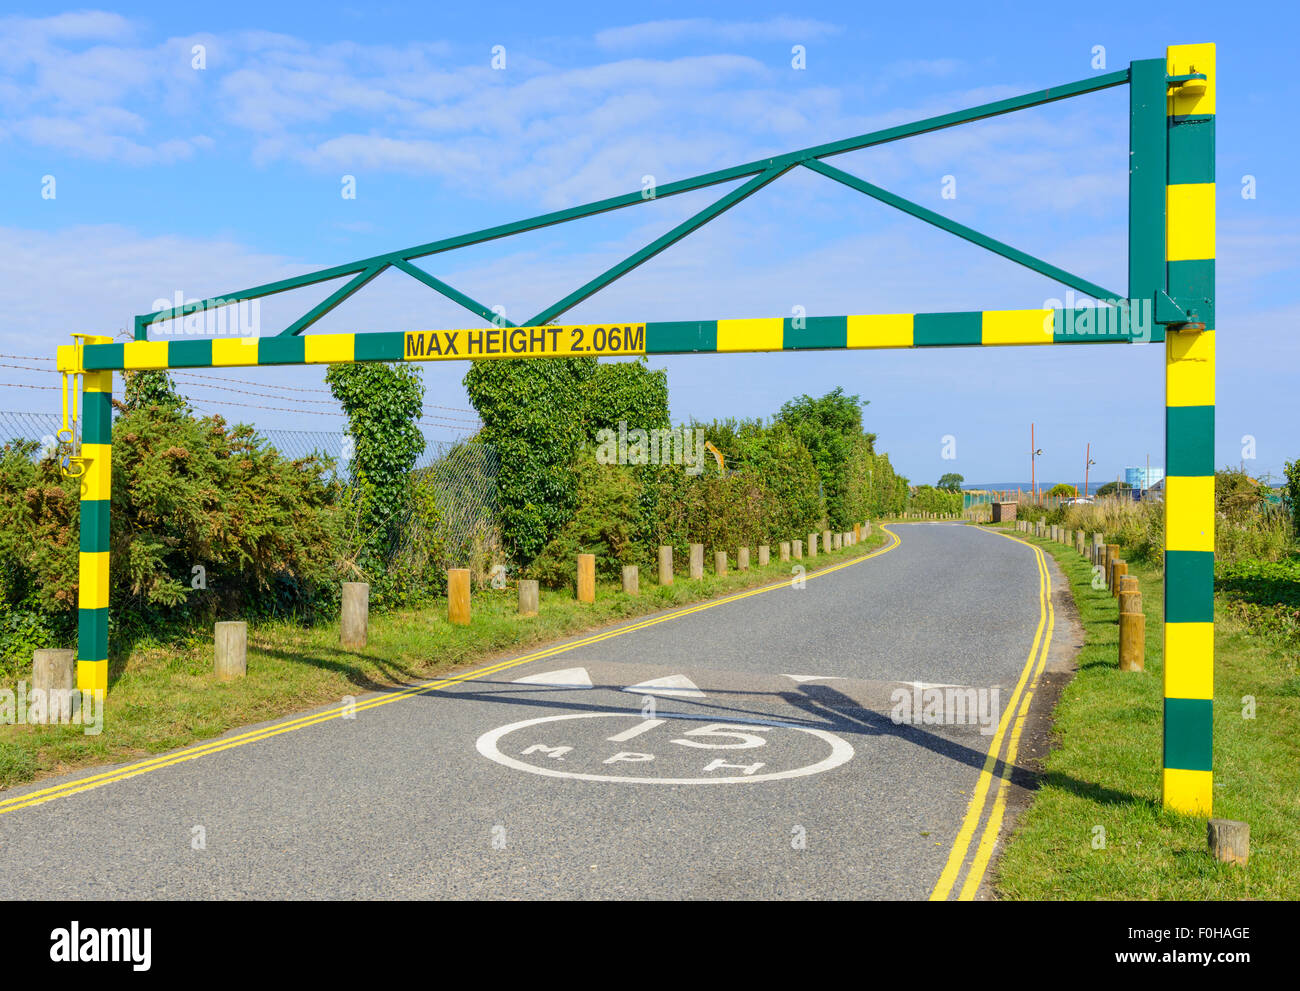 2.06m Maximum height restriction barrier at the entrance to the West Beach car park in Littlehampton, West Sussex, - Stock Image